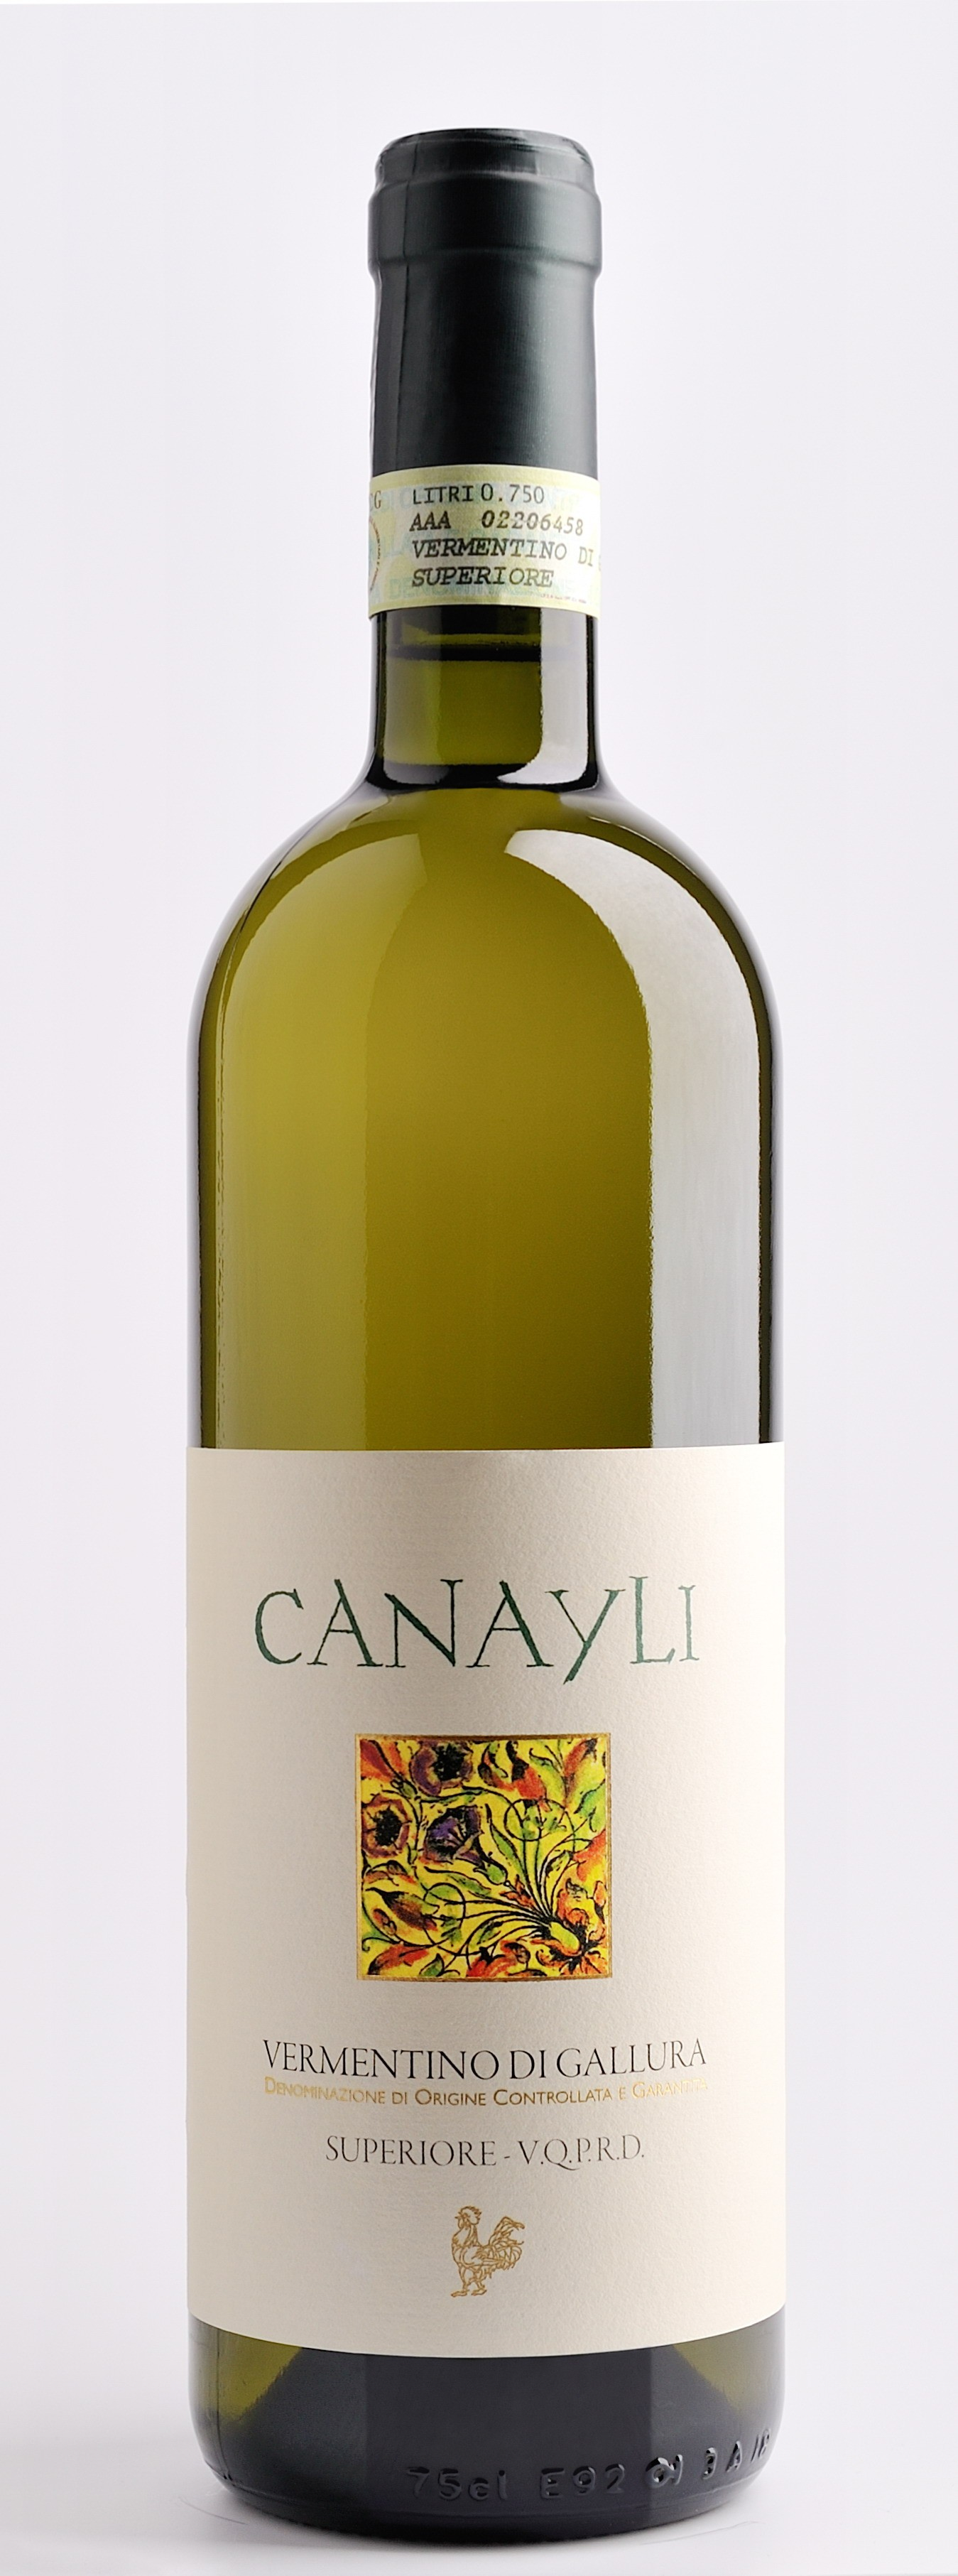 https://www.wineandgallery.cz/28-thickbox_default/canayli.jpg